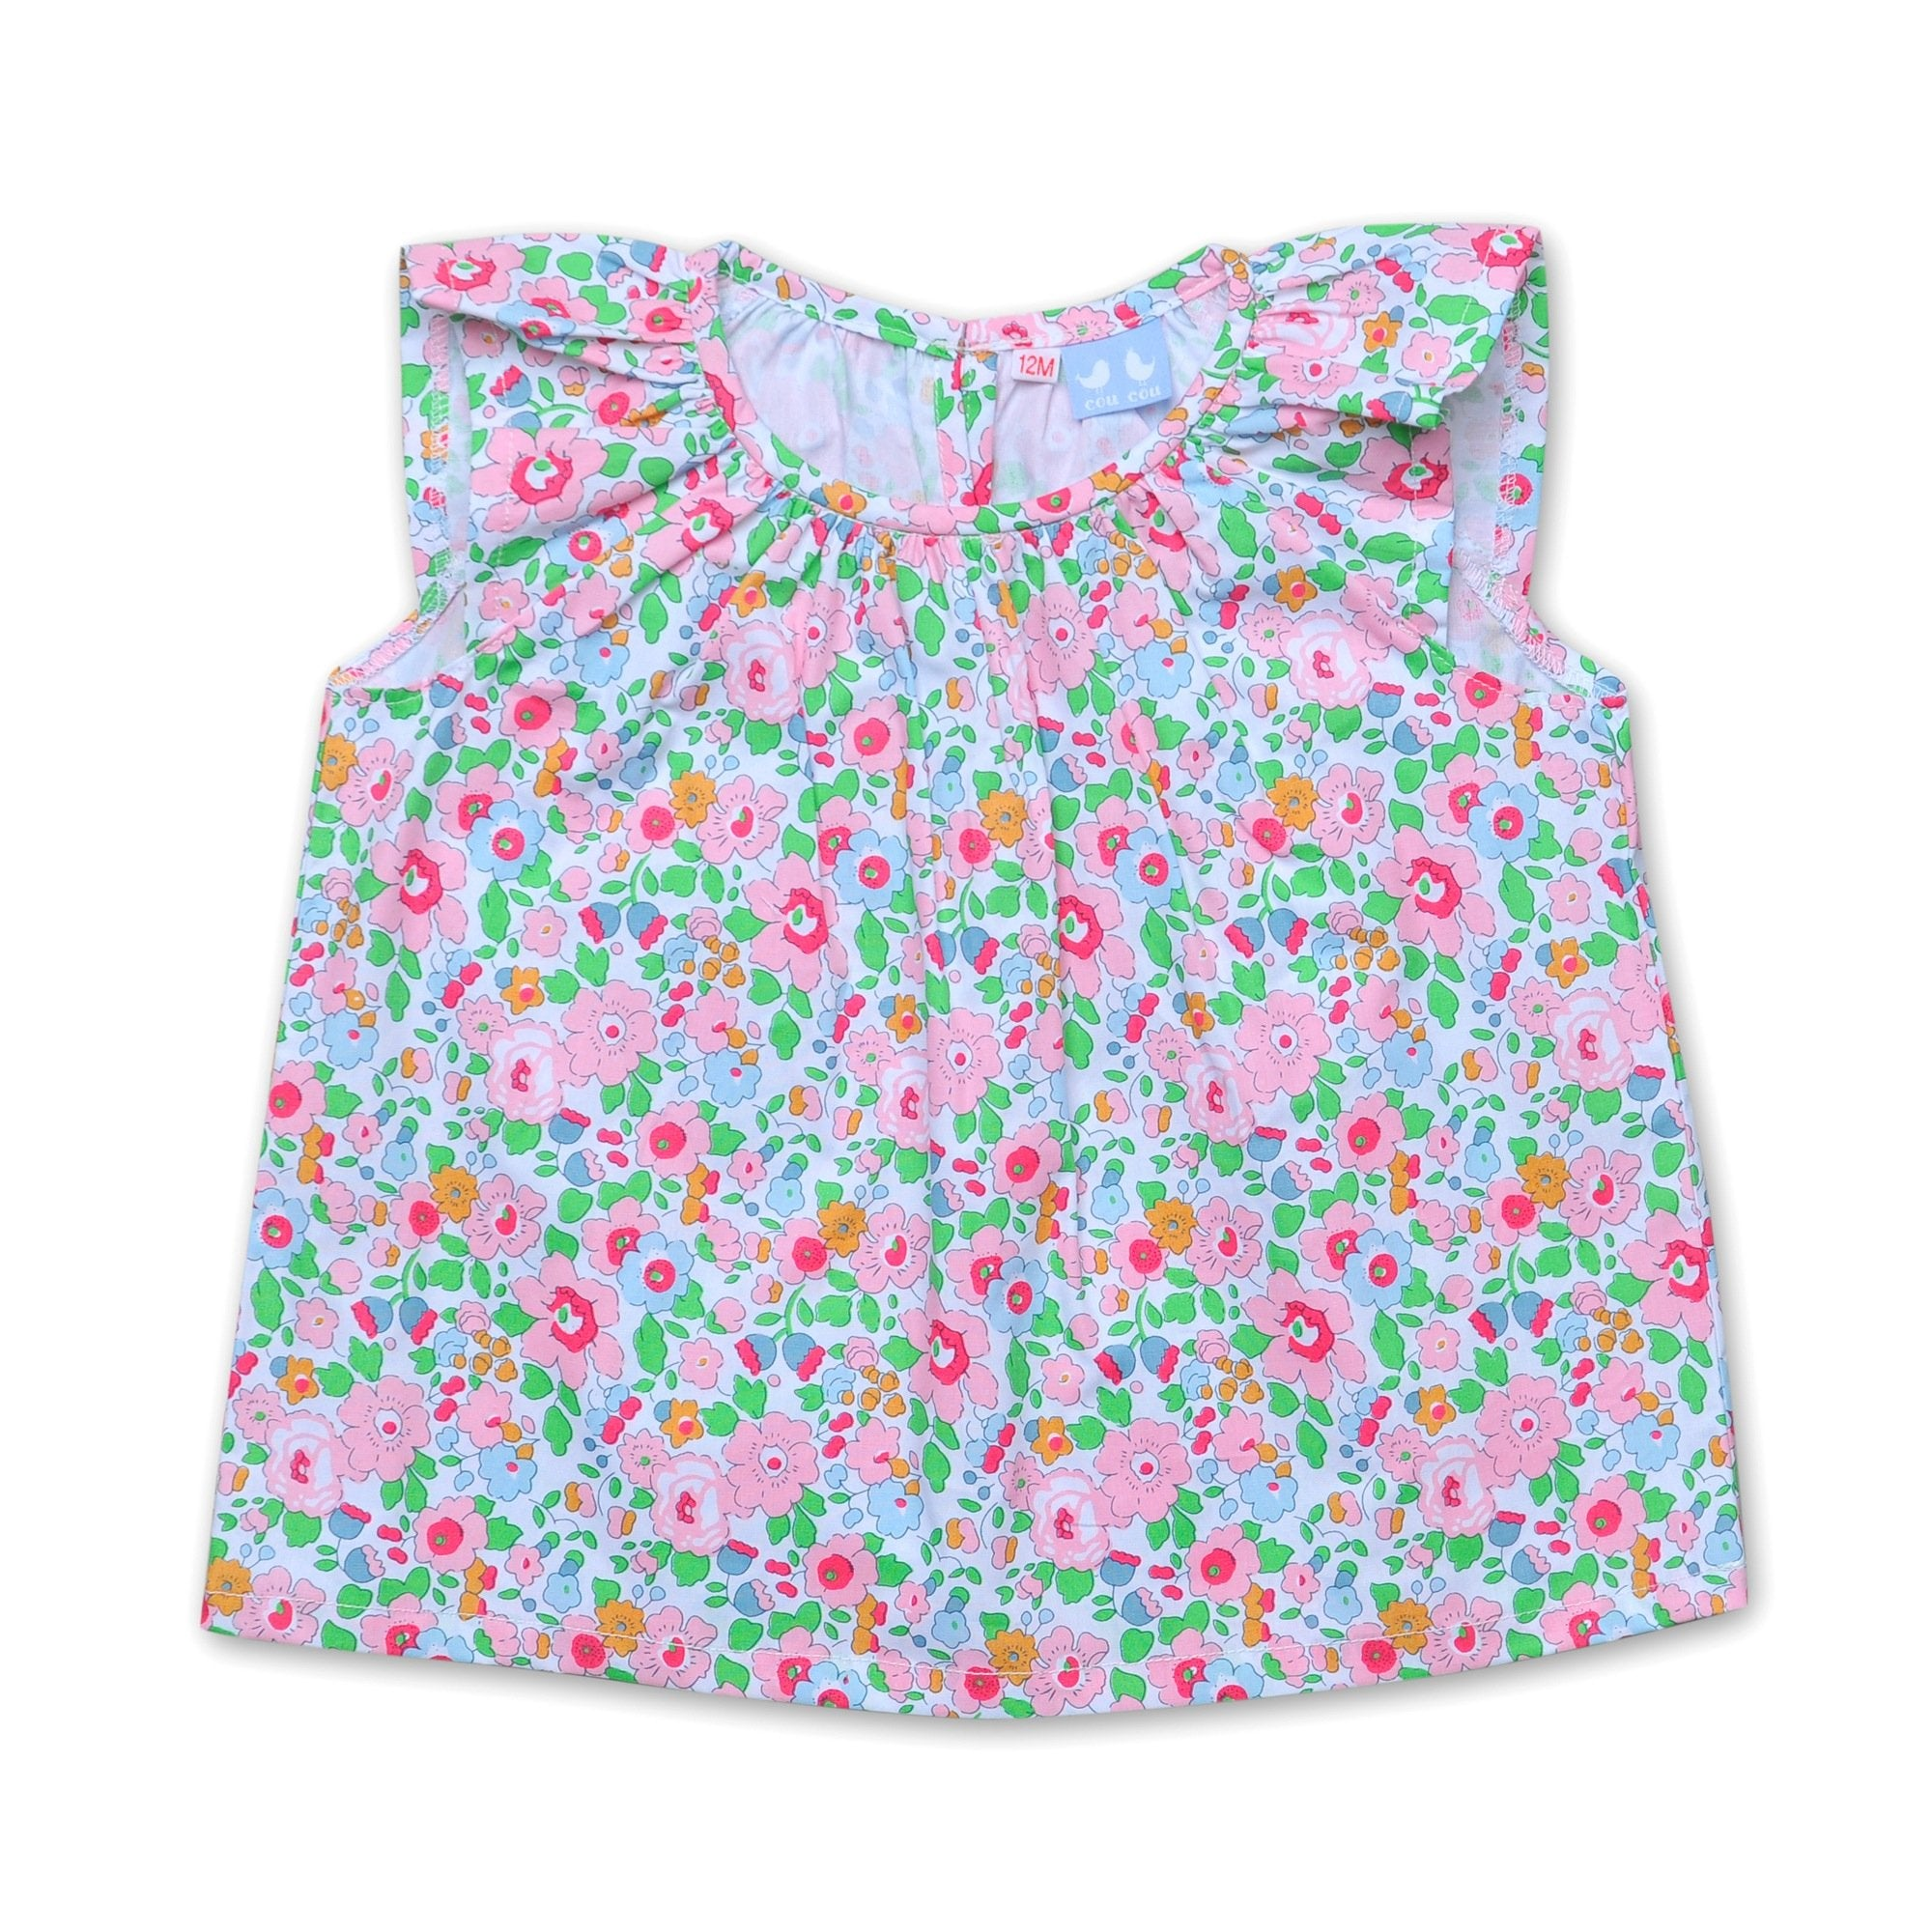 FLORRIE BLOOMERS IN LIBERTY PRINT